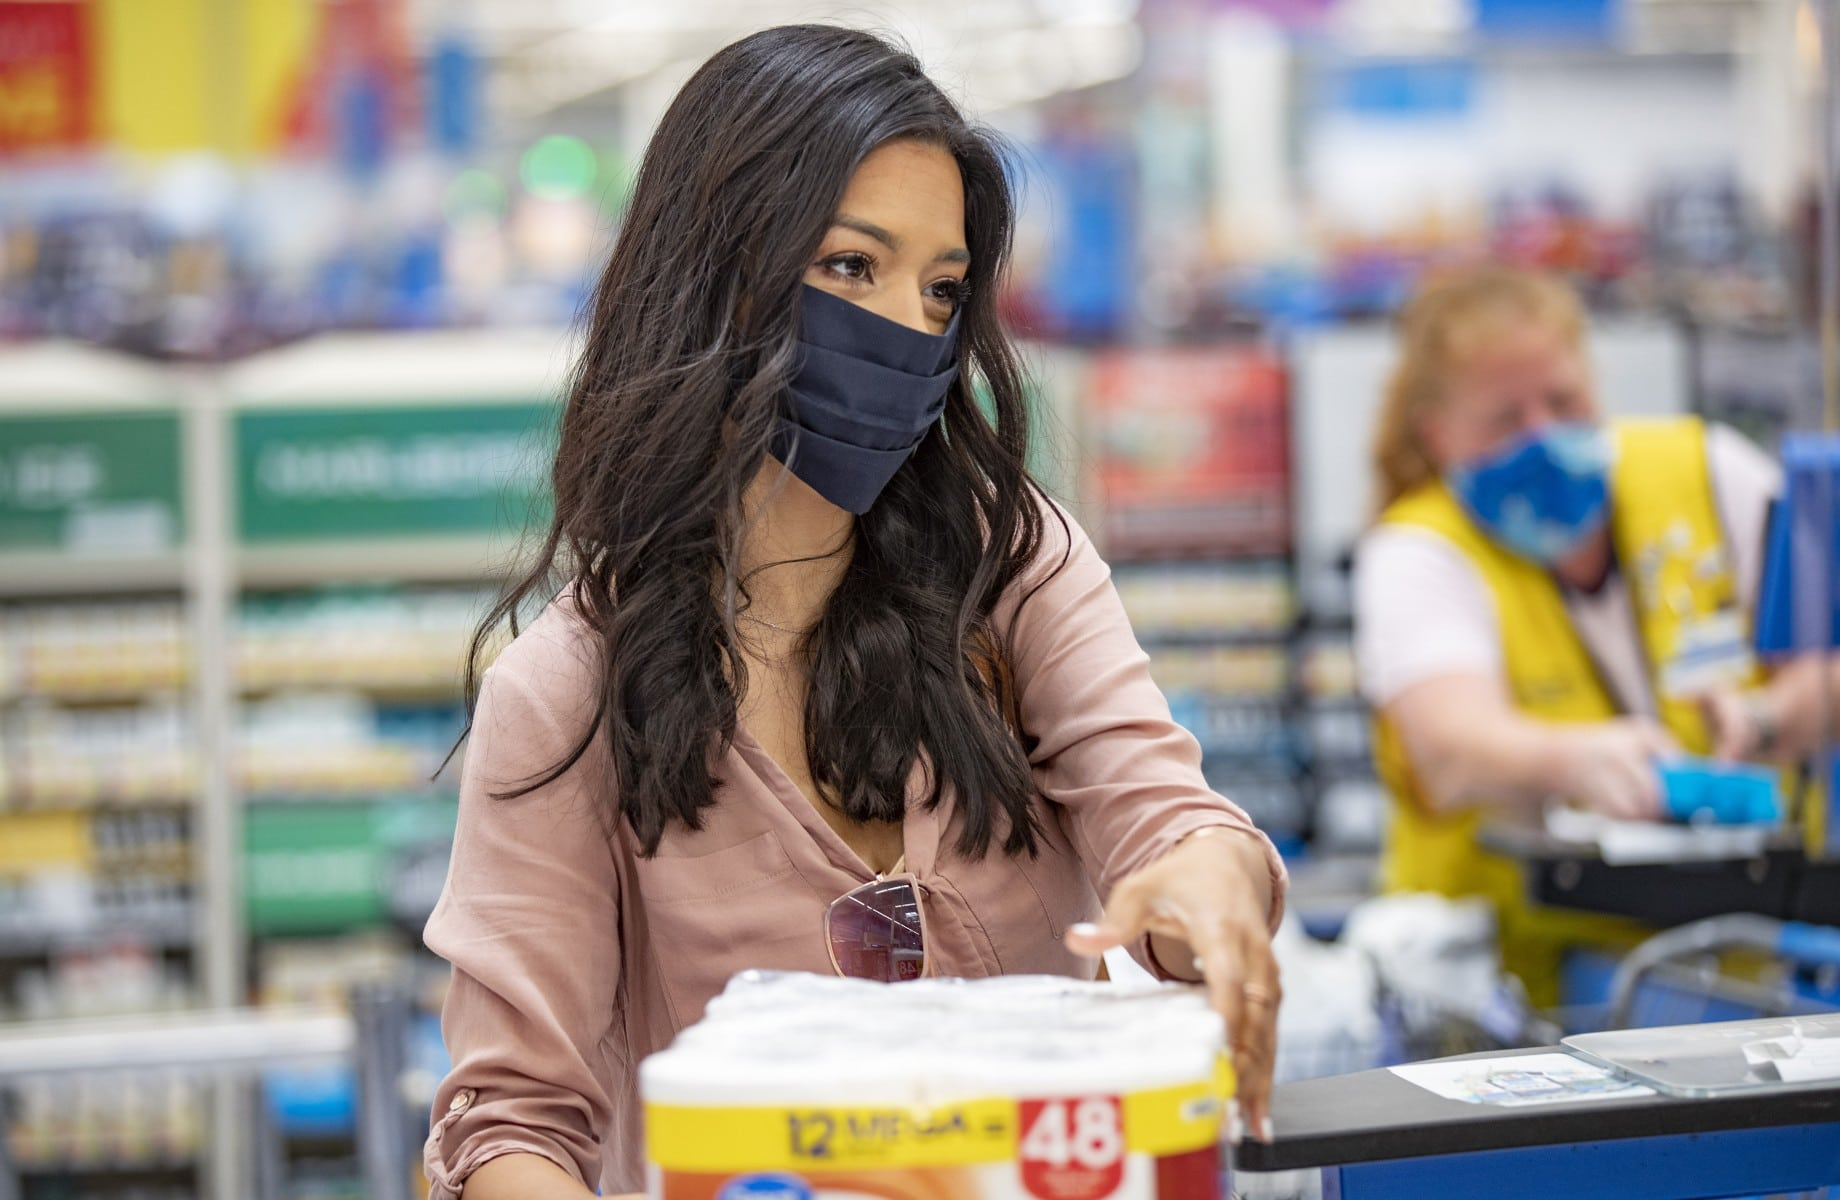 A Simple Step to Help Keep You Safe: Walmart and Sam's Club Require Shoppers to Wear Face Coverings